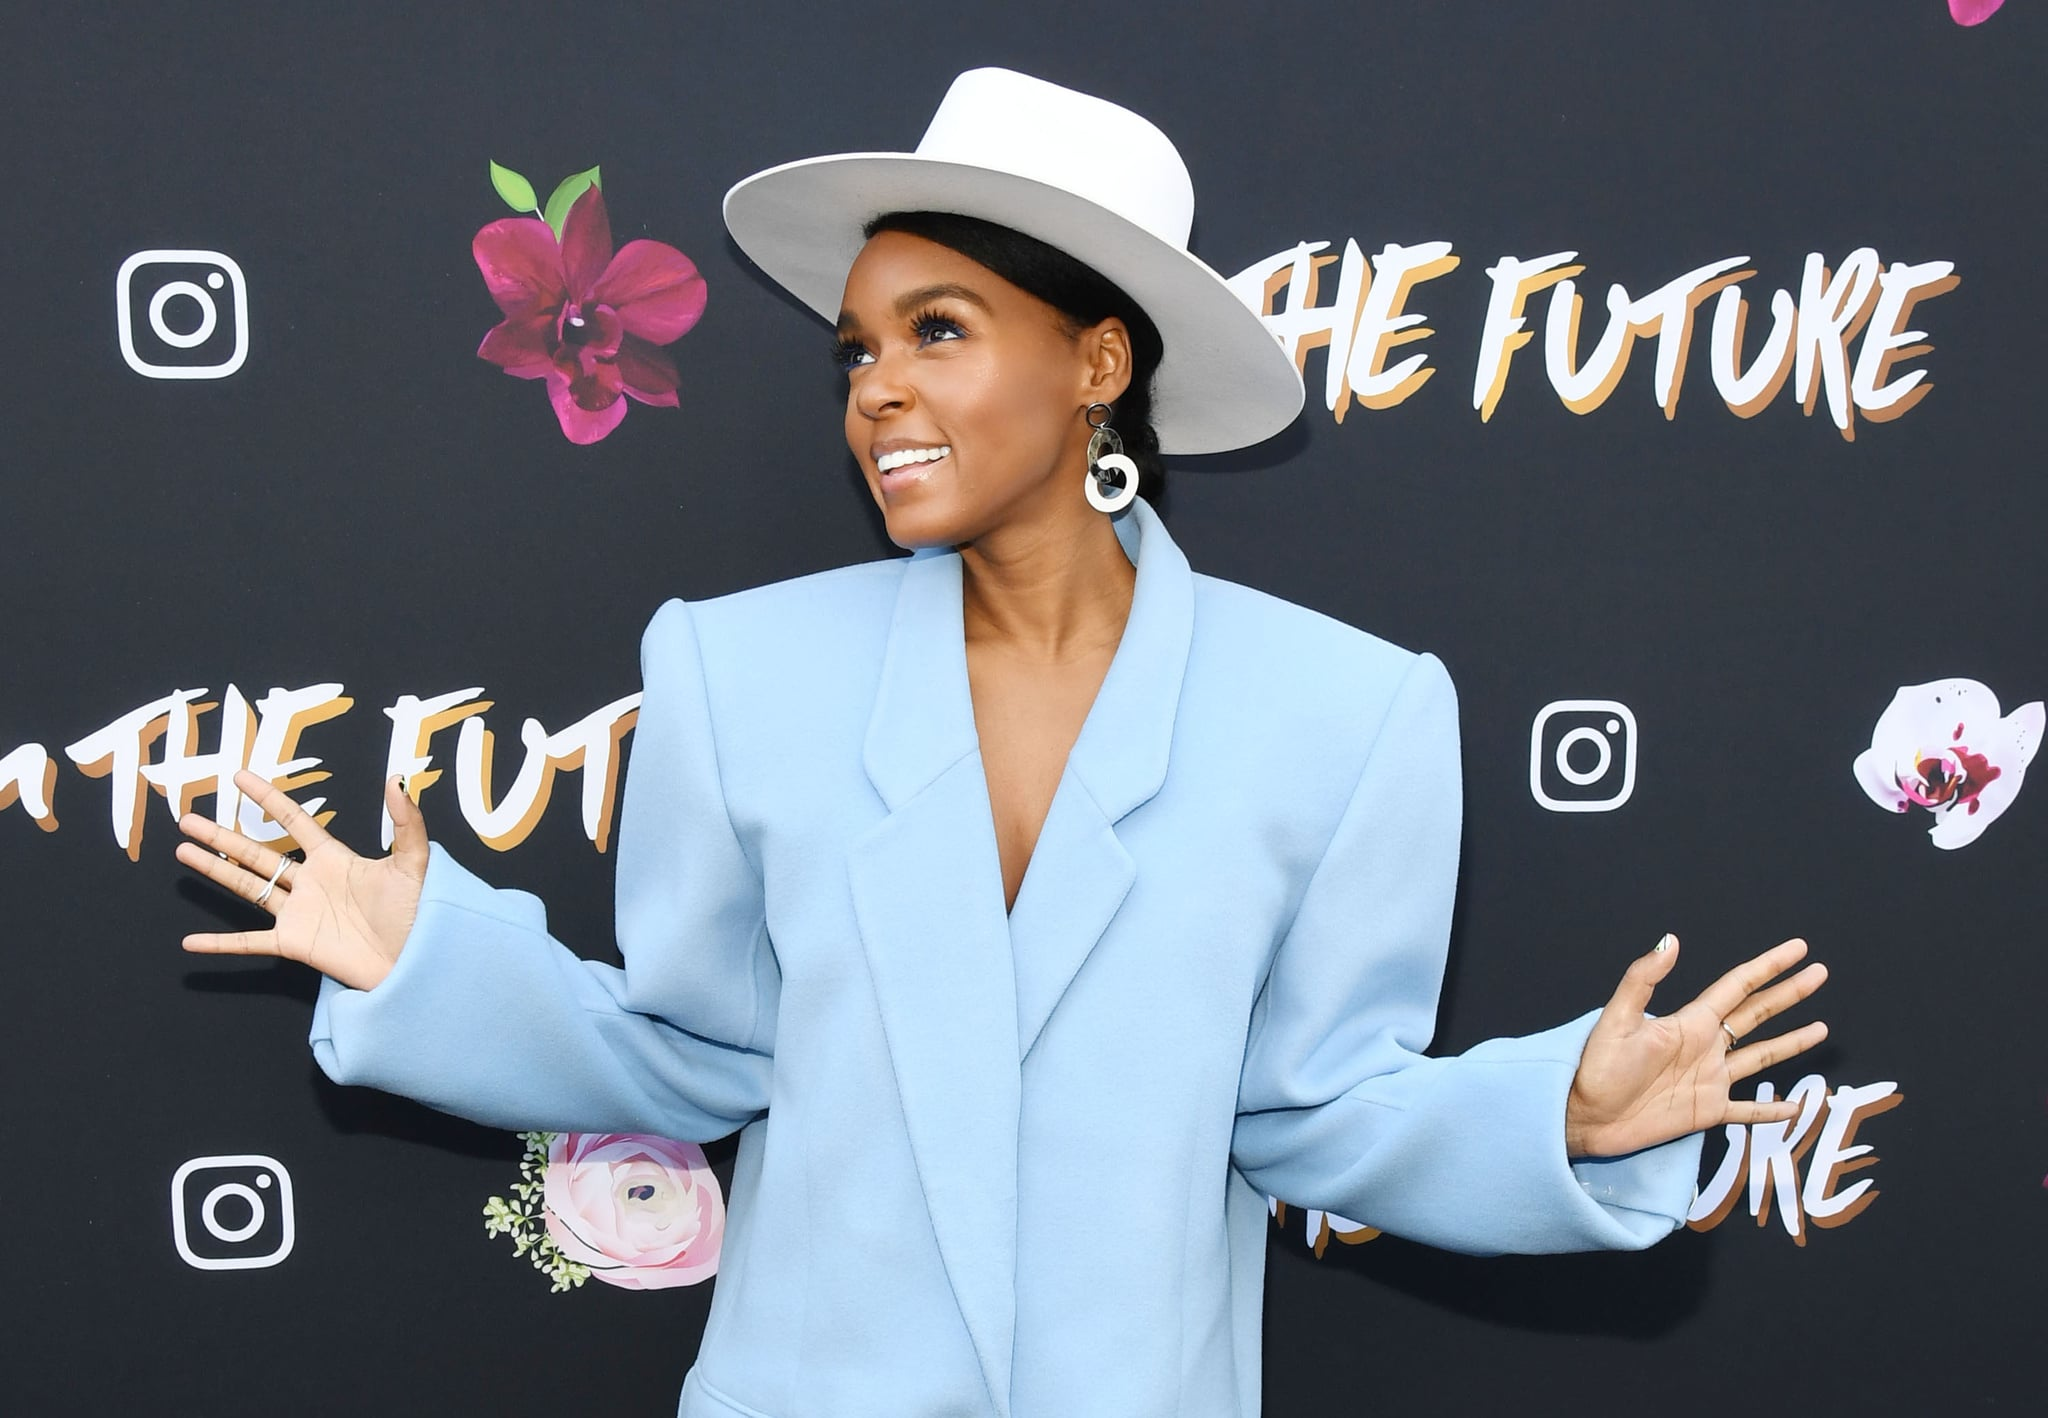 LOS ANGELES, CALIFORNIA - FEBRUARY 08: Janelle Monae attends Janelle Monae x Instagram Fem The Future Brunch on February 08, 2019 in Los Angeles, California. (Photo by Amy Sussman/Getty Images)